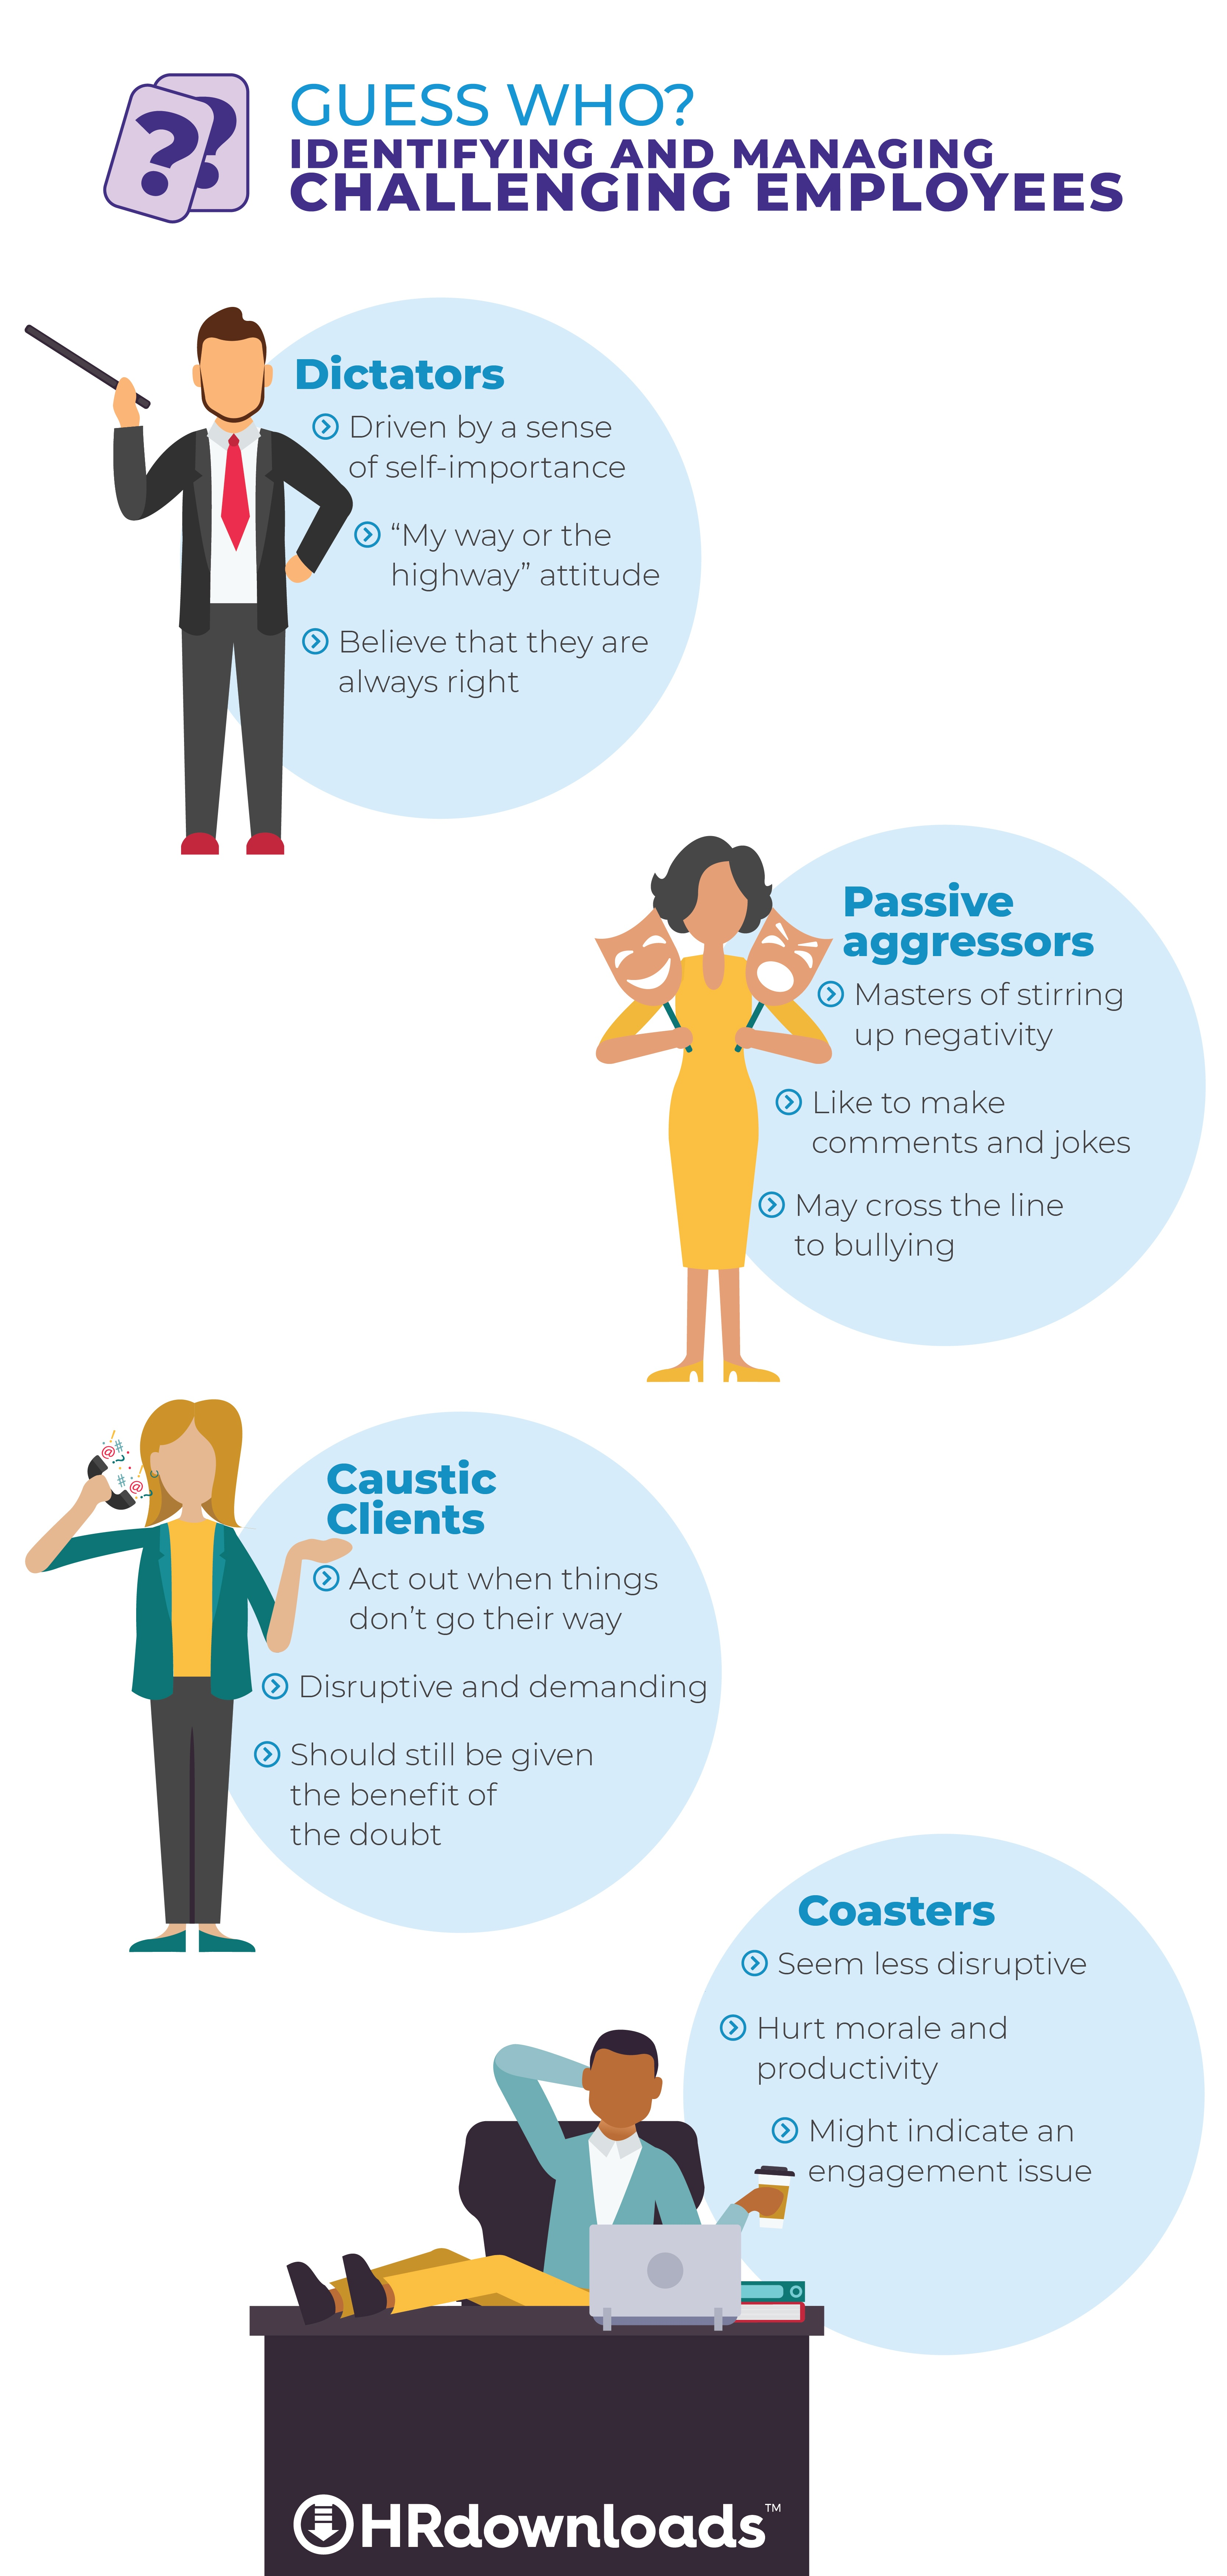 Identifying and Managing Challenging Employees Infographic